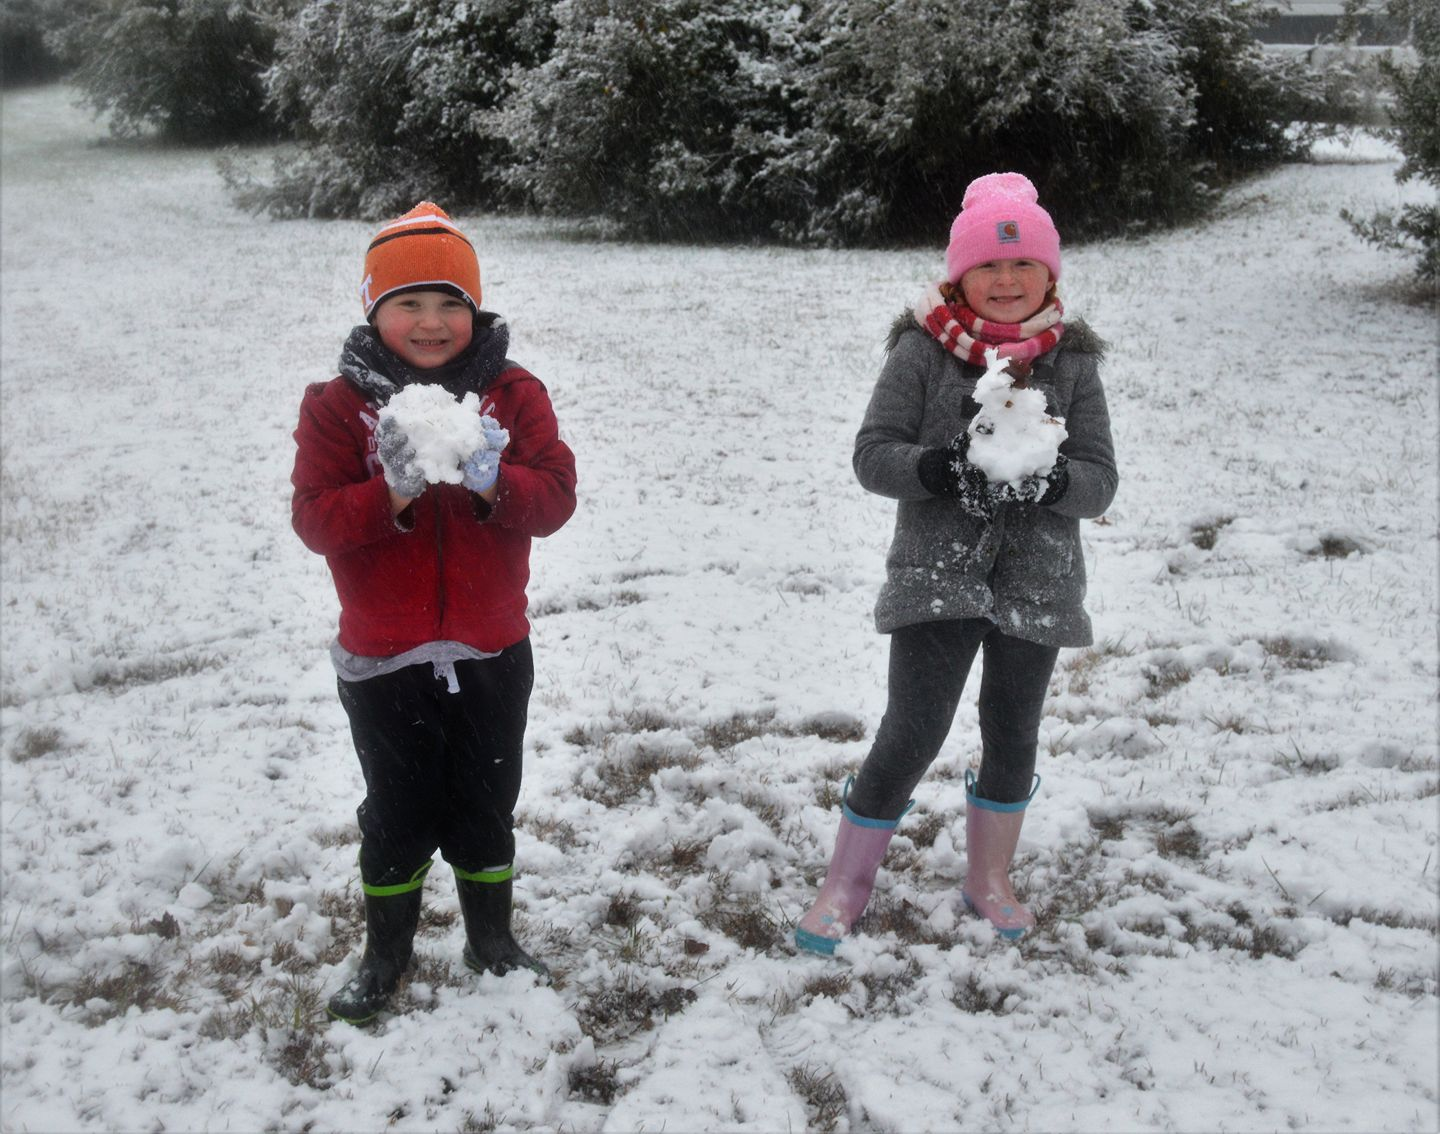 <div class='meta'><div class='origin-logo' data-origin='none'></div><span class='caption-text' data-credit='Credit: Katie Frank'>Snowball fight in Elfand</span></div>